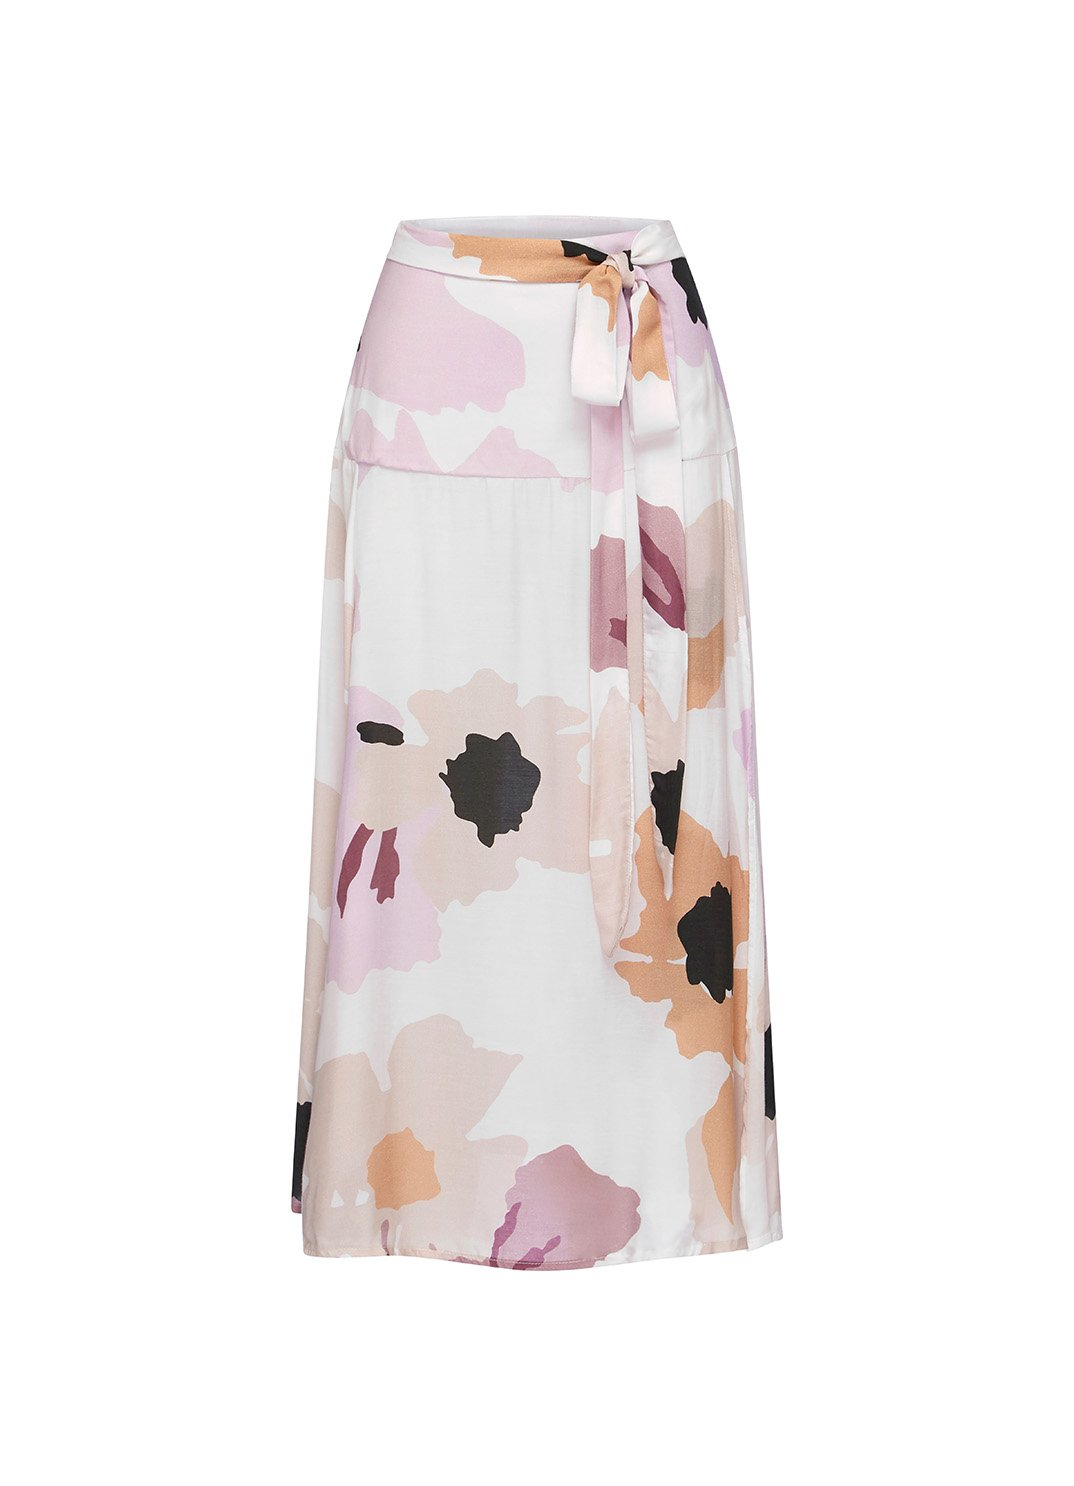 Soiree Midi Skirt